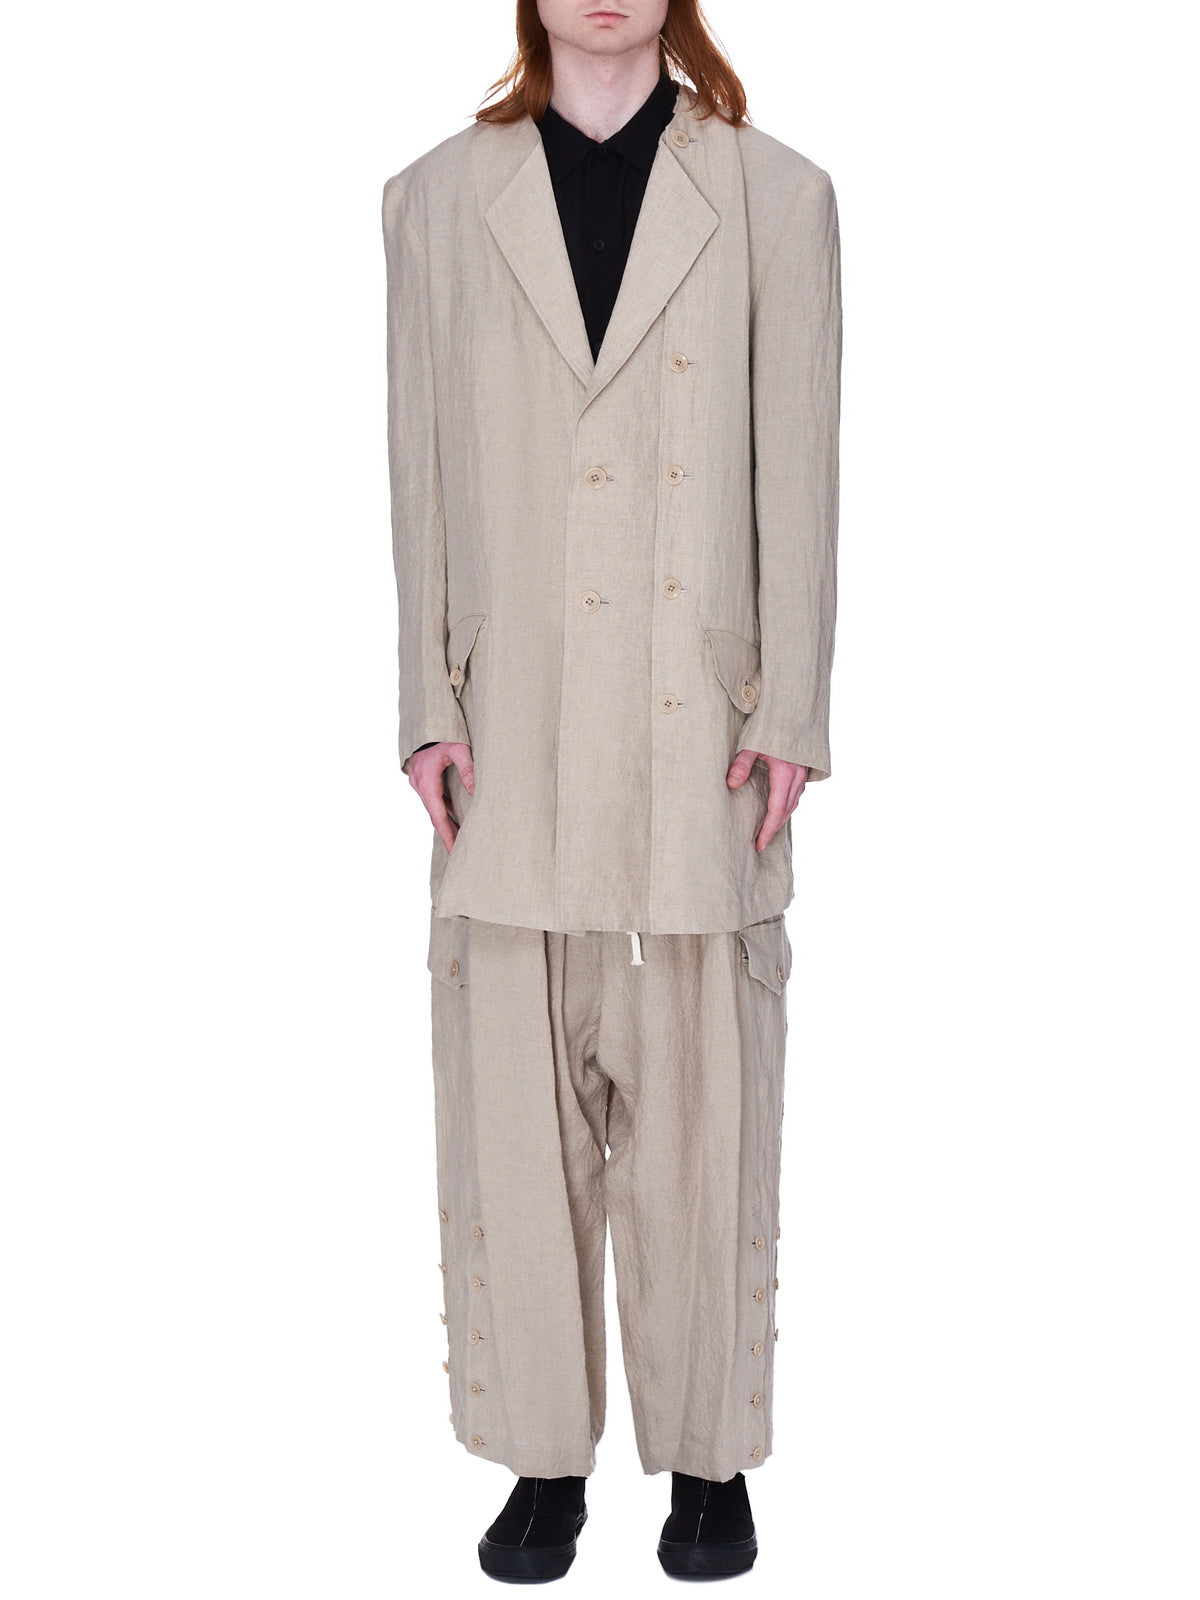 Linen Panel Jacket (HD-J21-303-BEIGE)